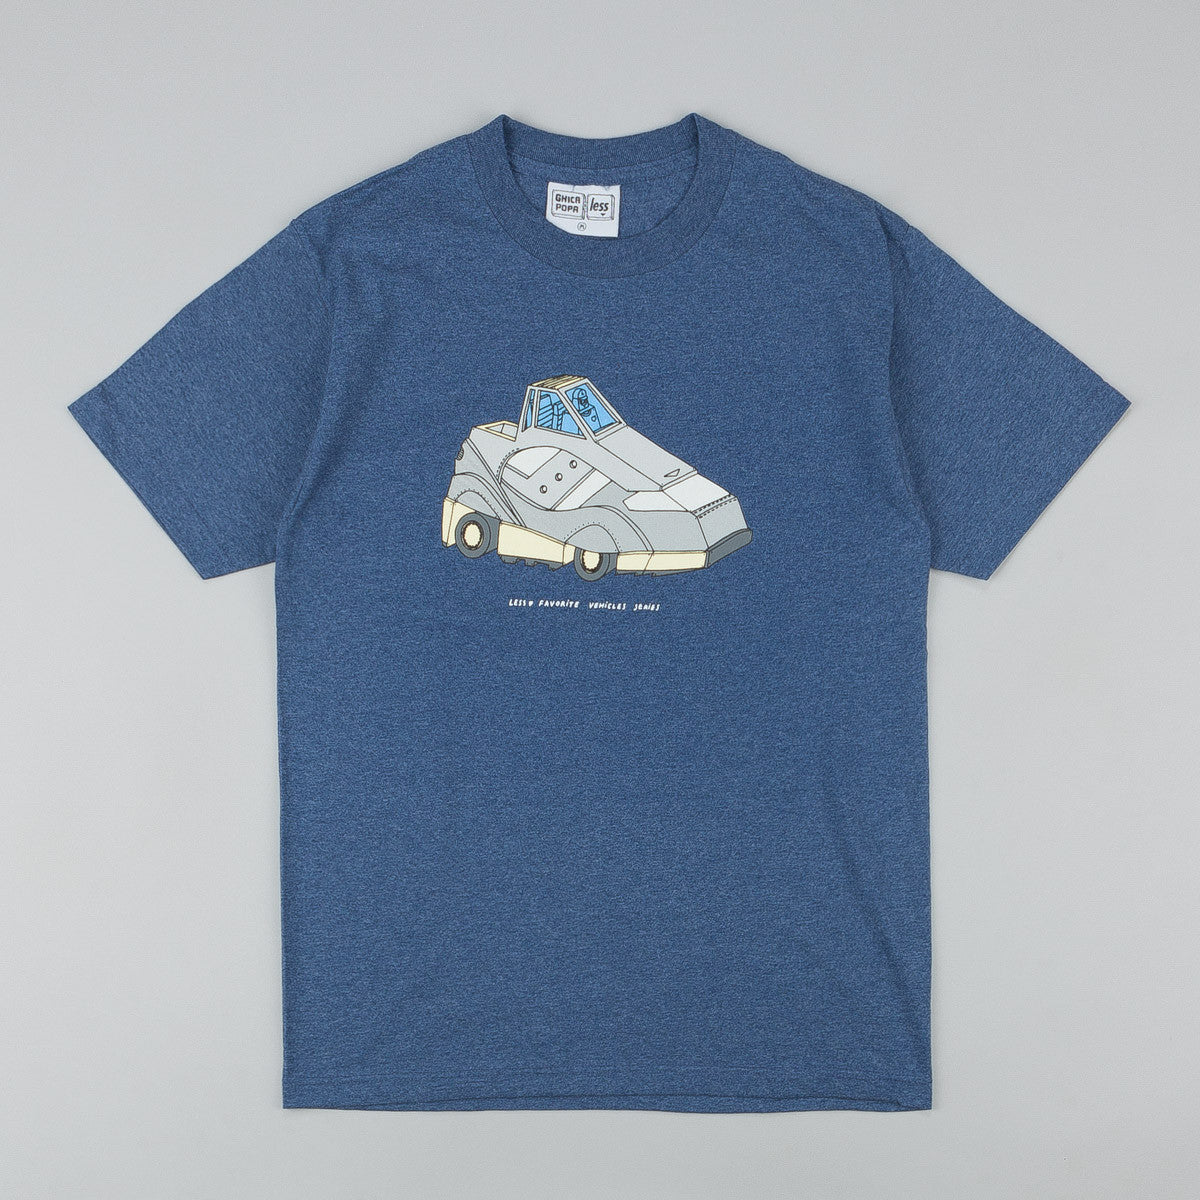 Less x Ghica Popa Vehicles Series G9 Shadow T-Shirt - Denim Heather